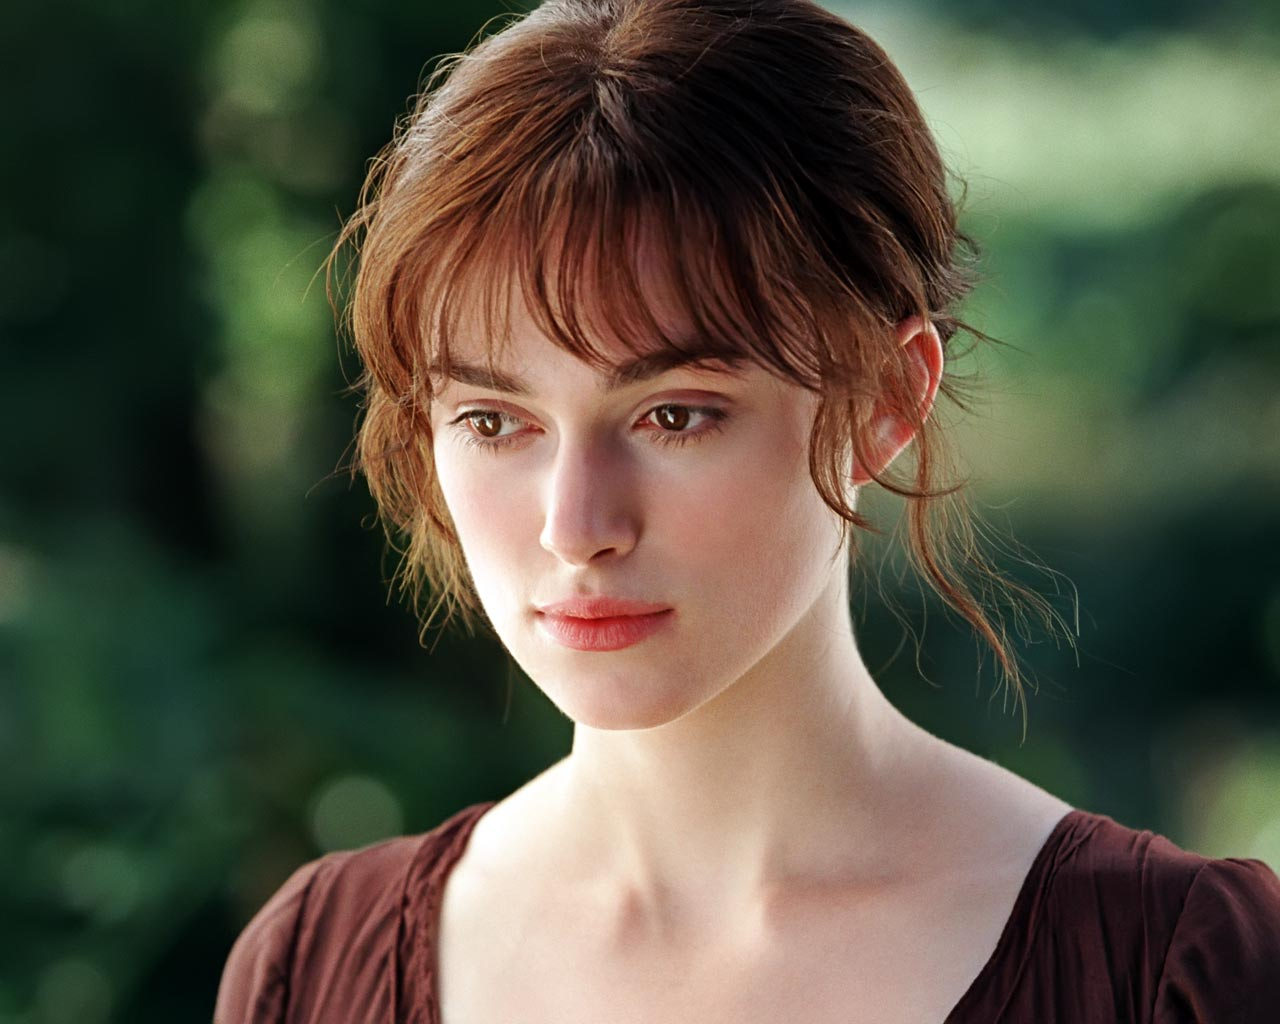 The Regular Guy Believes: Girl of the Day - Keira Knightley